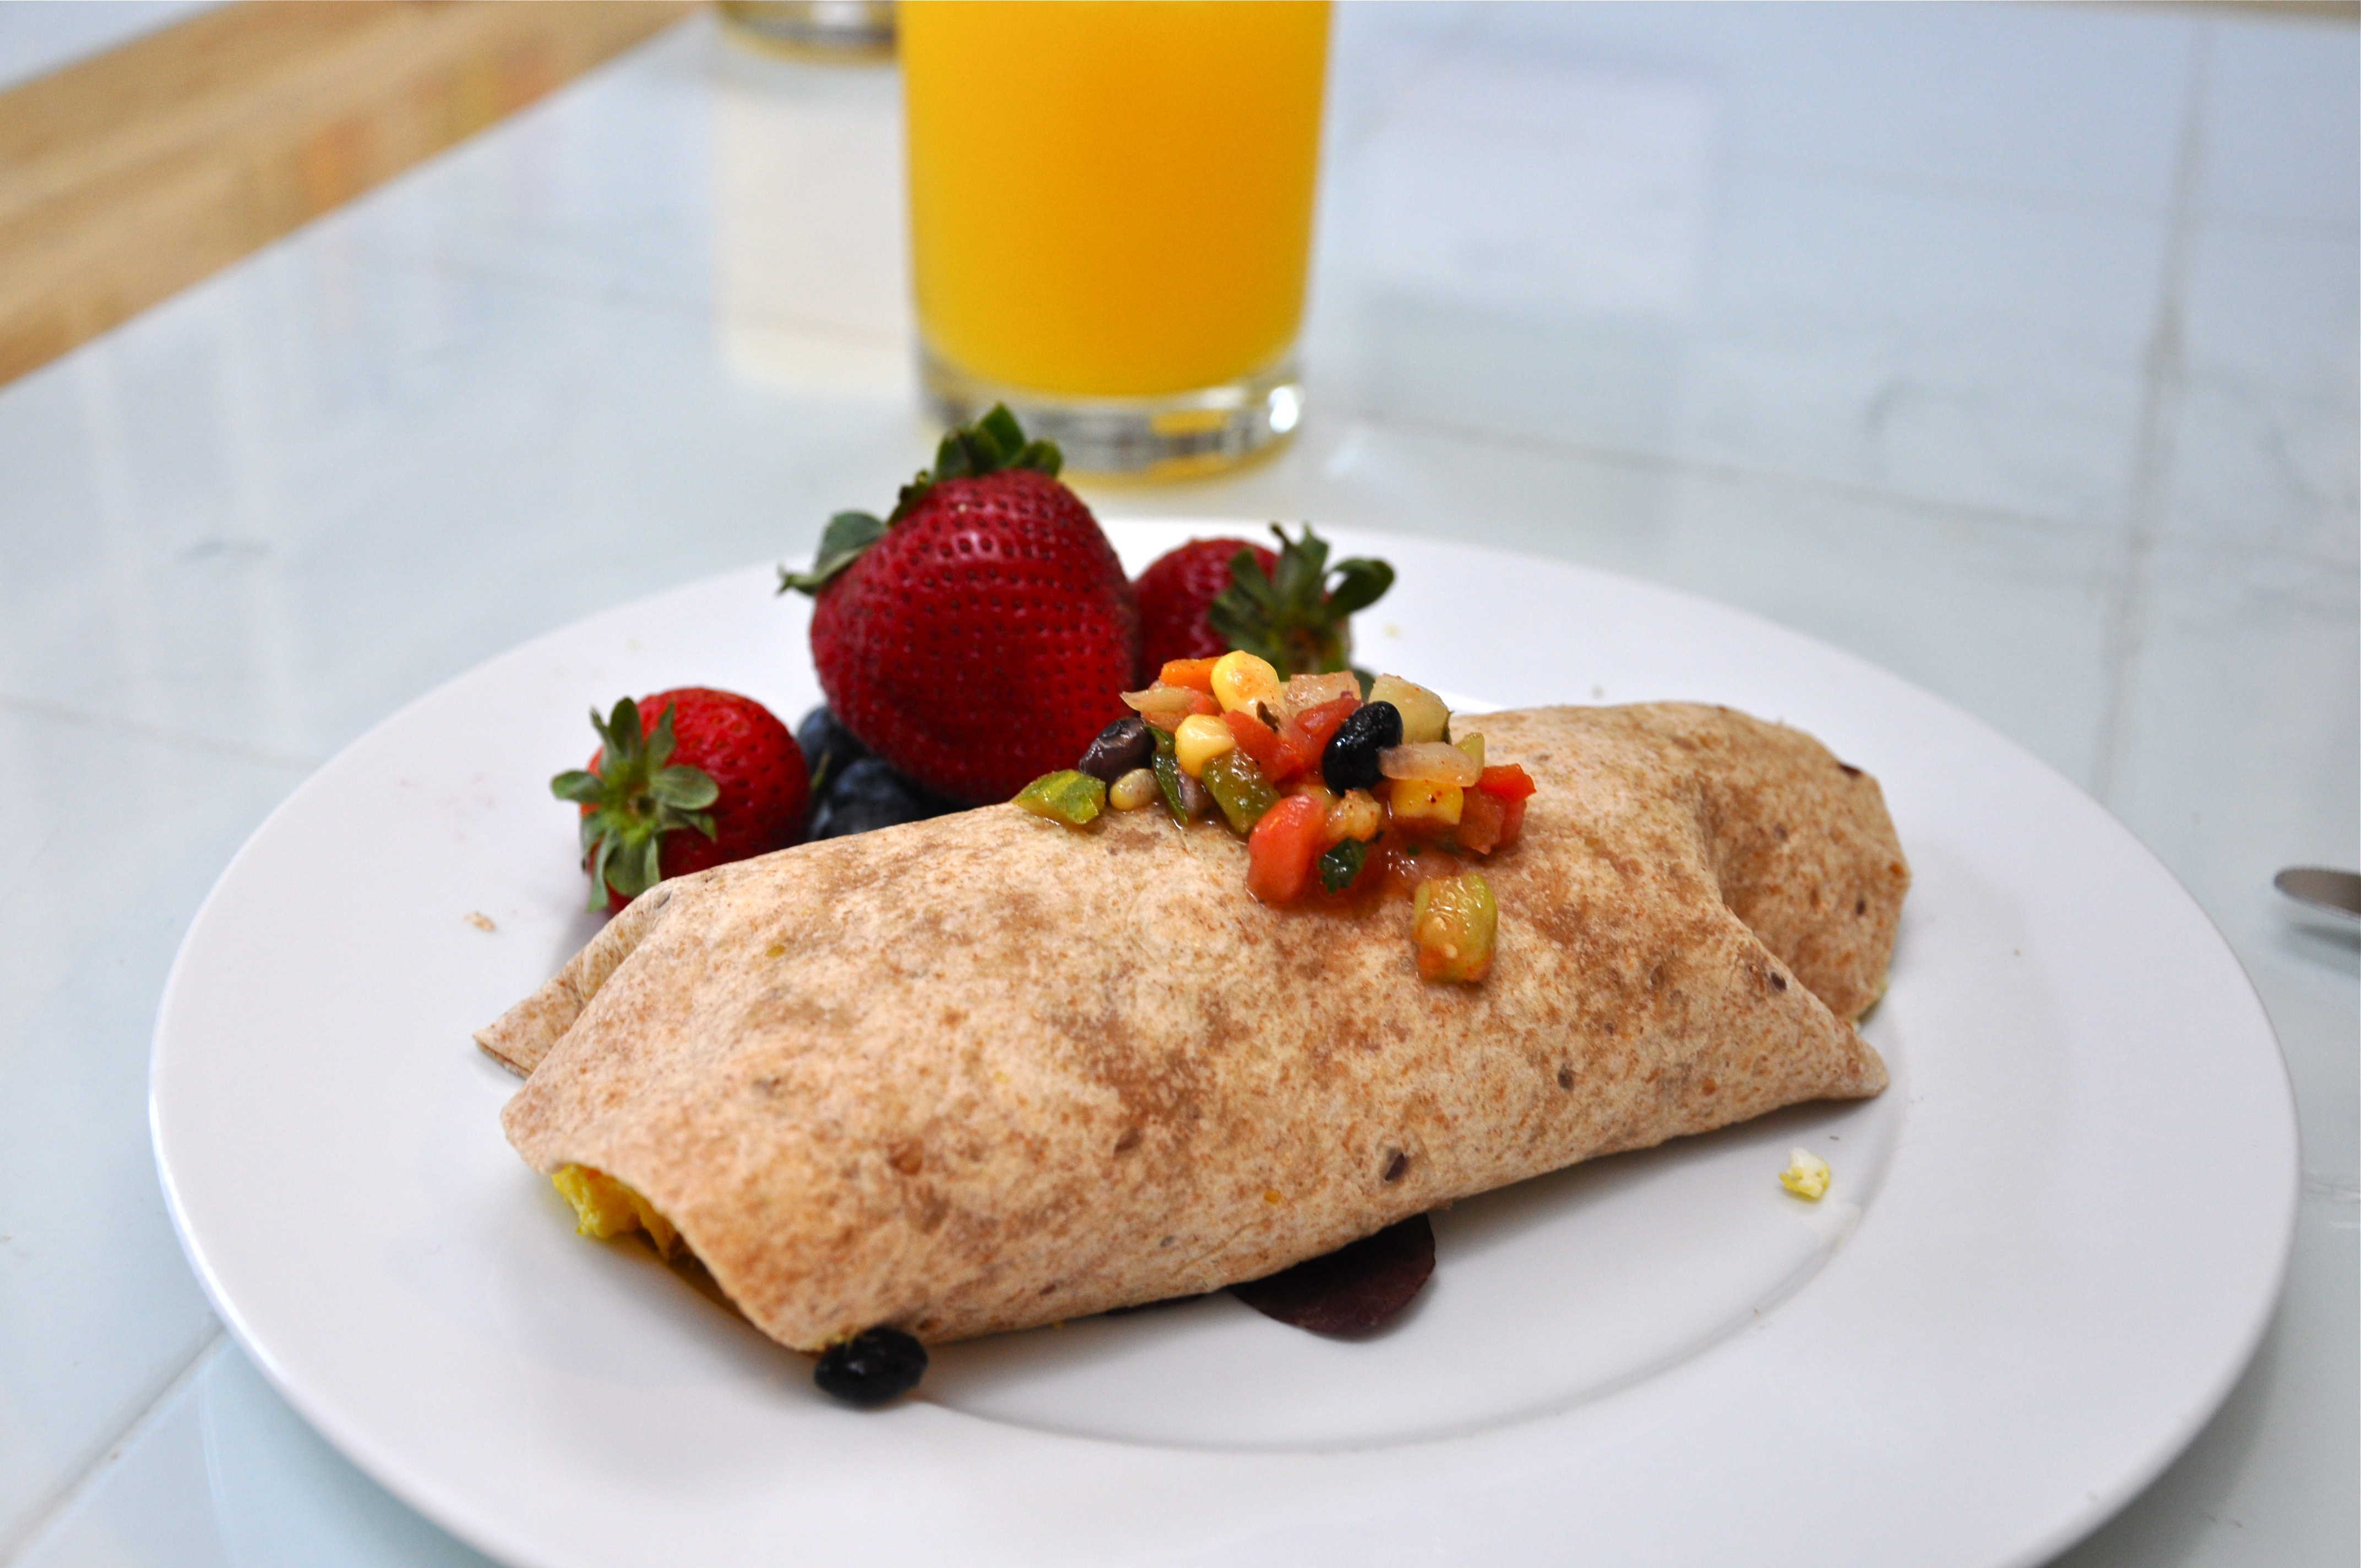 The Awesome Breakfast Burrito